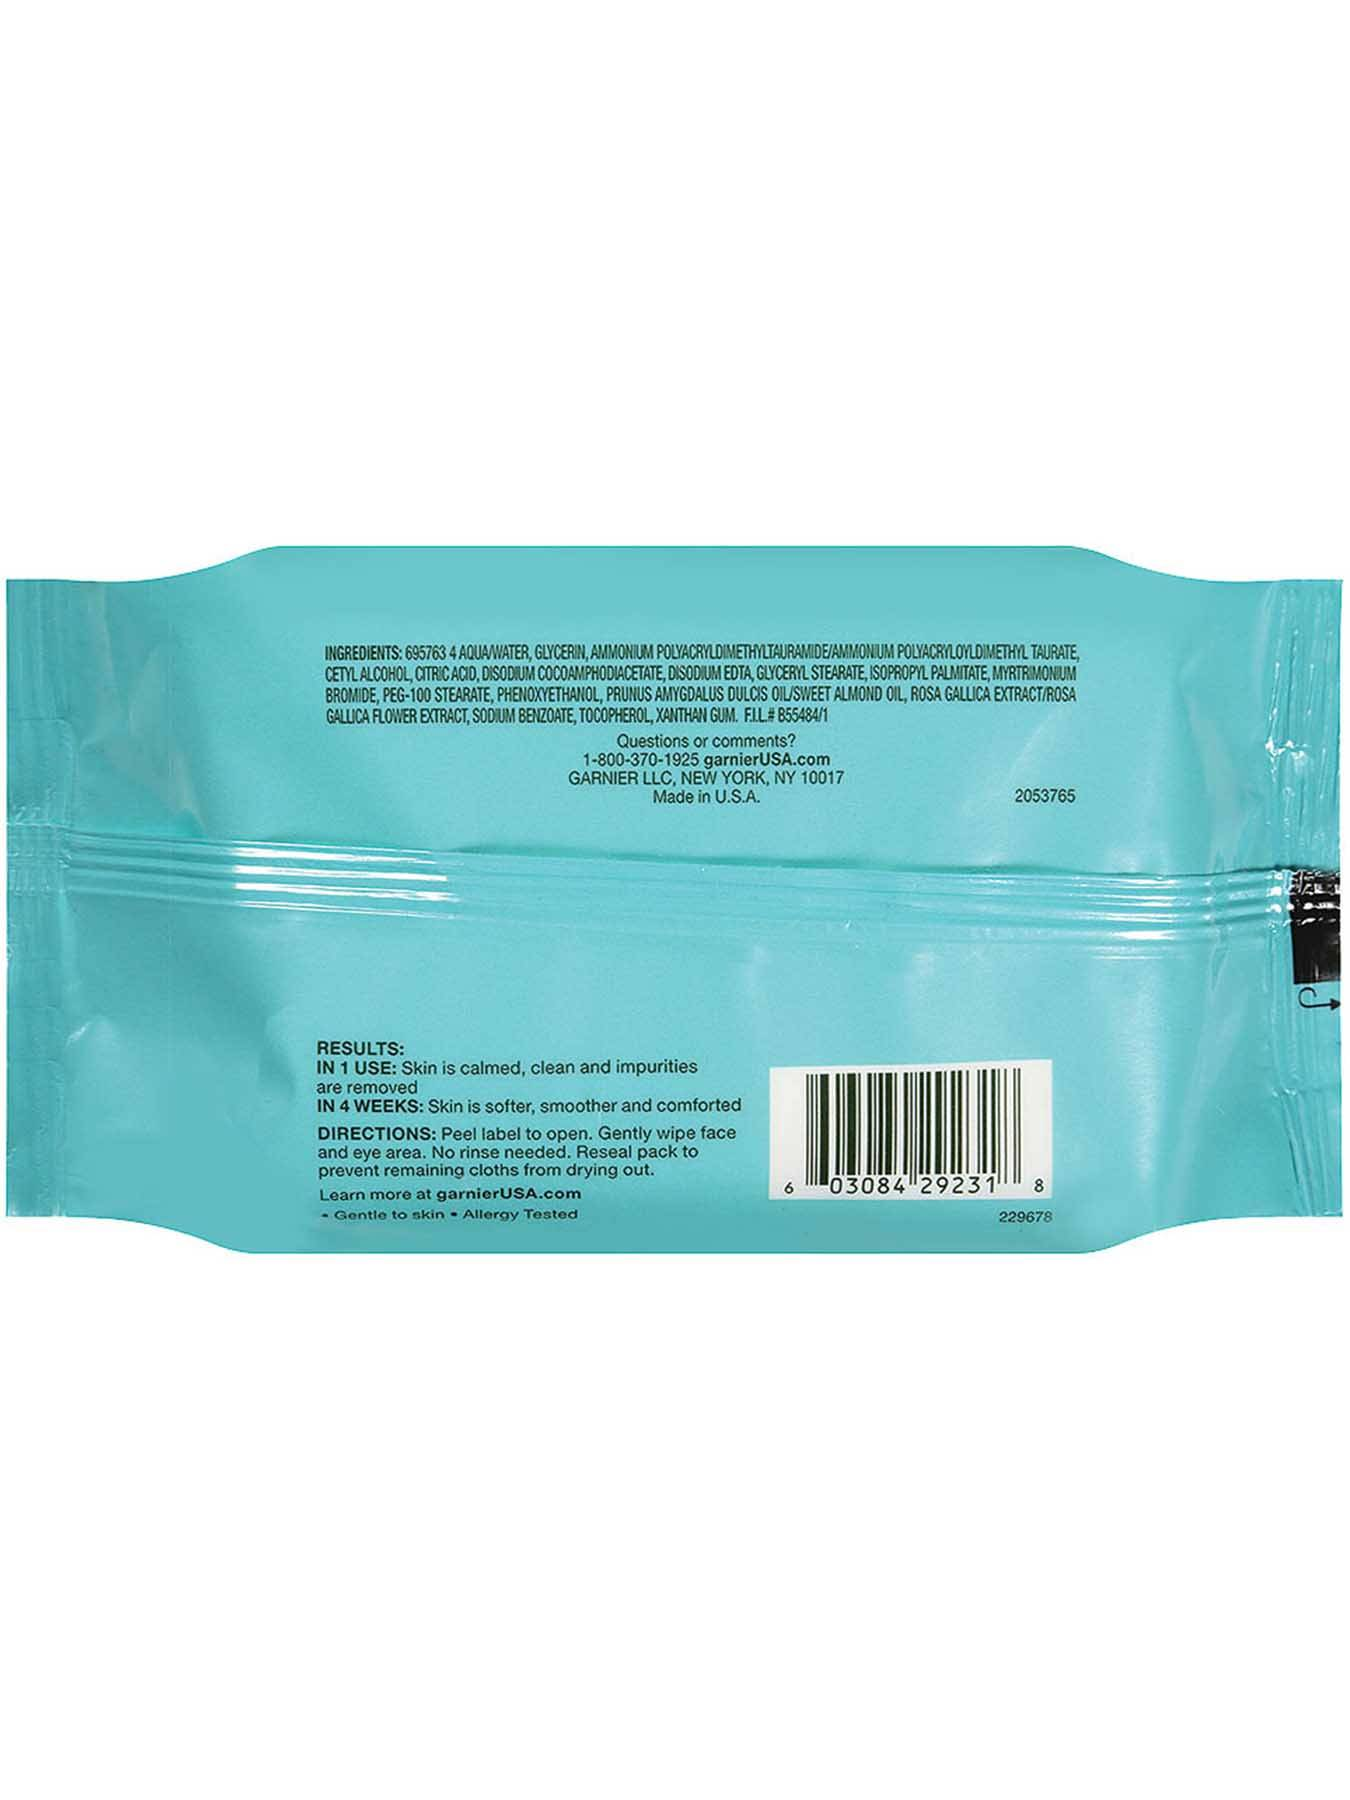 Back view of Clean+ Soothing Makeup Removing Cleansing Towelette for Sensitive Skin.